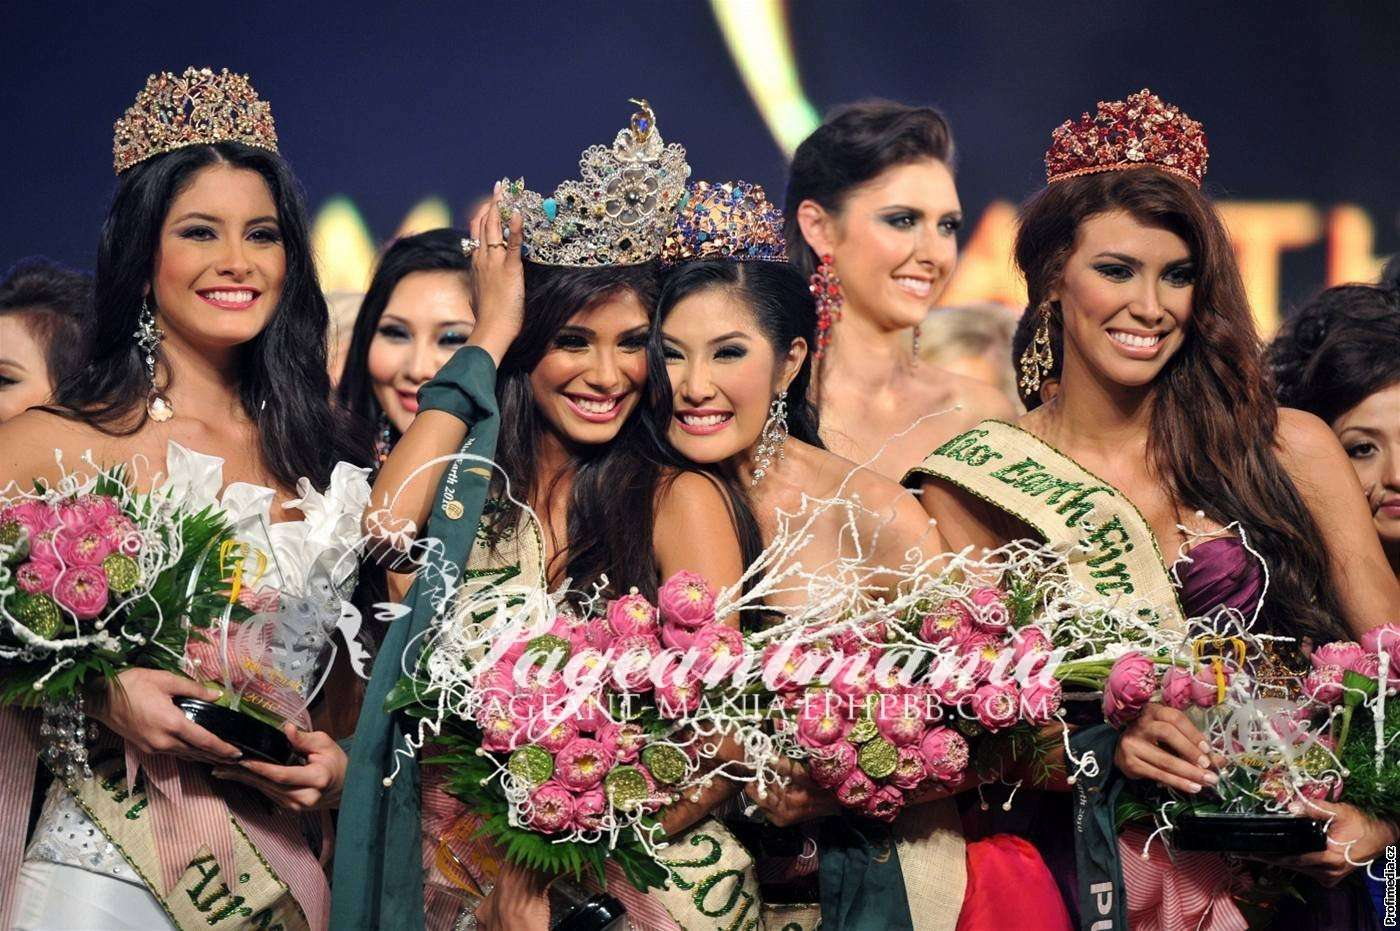 Official thread of MISS EARTH 2010 - Nicole Faria (India) Ved37910